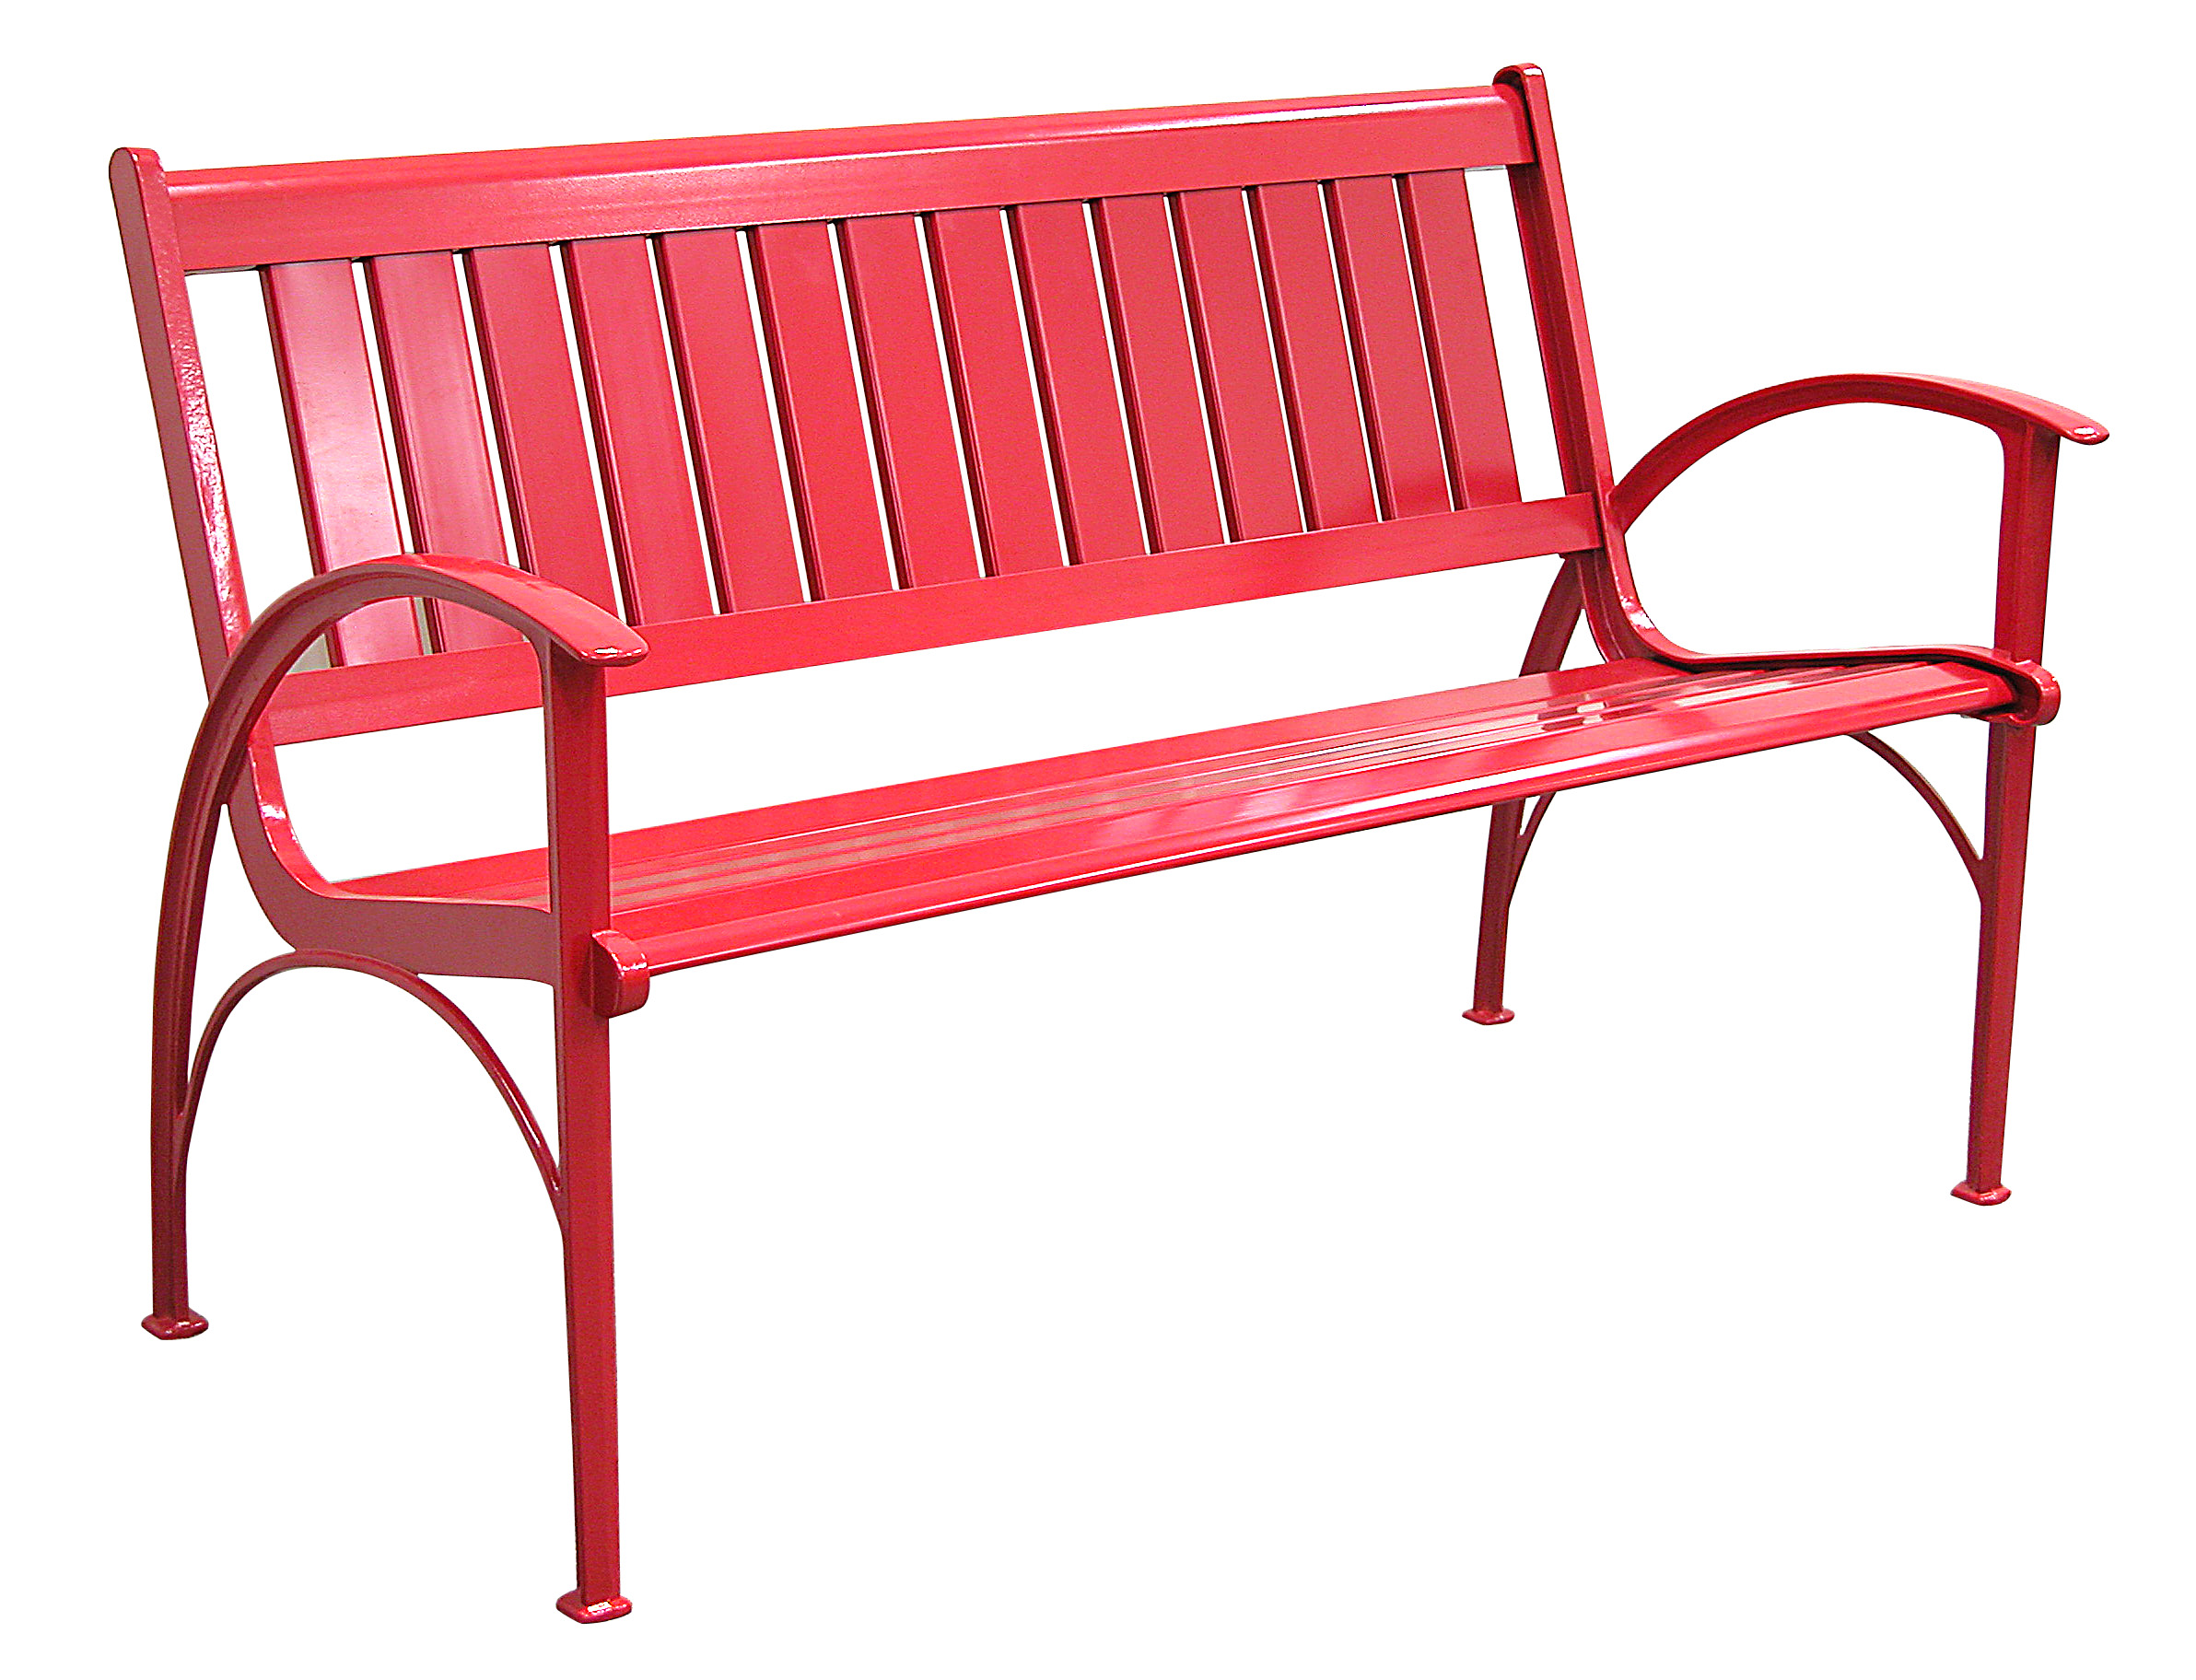 Patio furniture bench contemporary cast aluminum red for Metal benches for outdoors